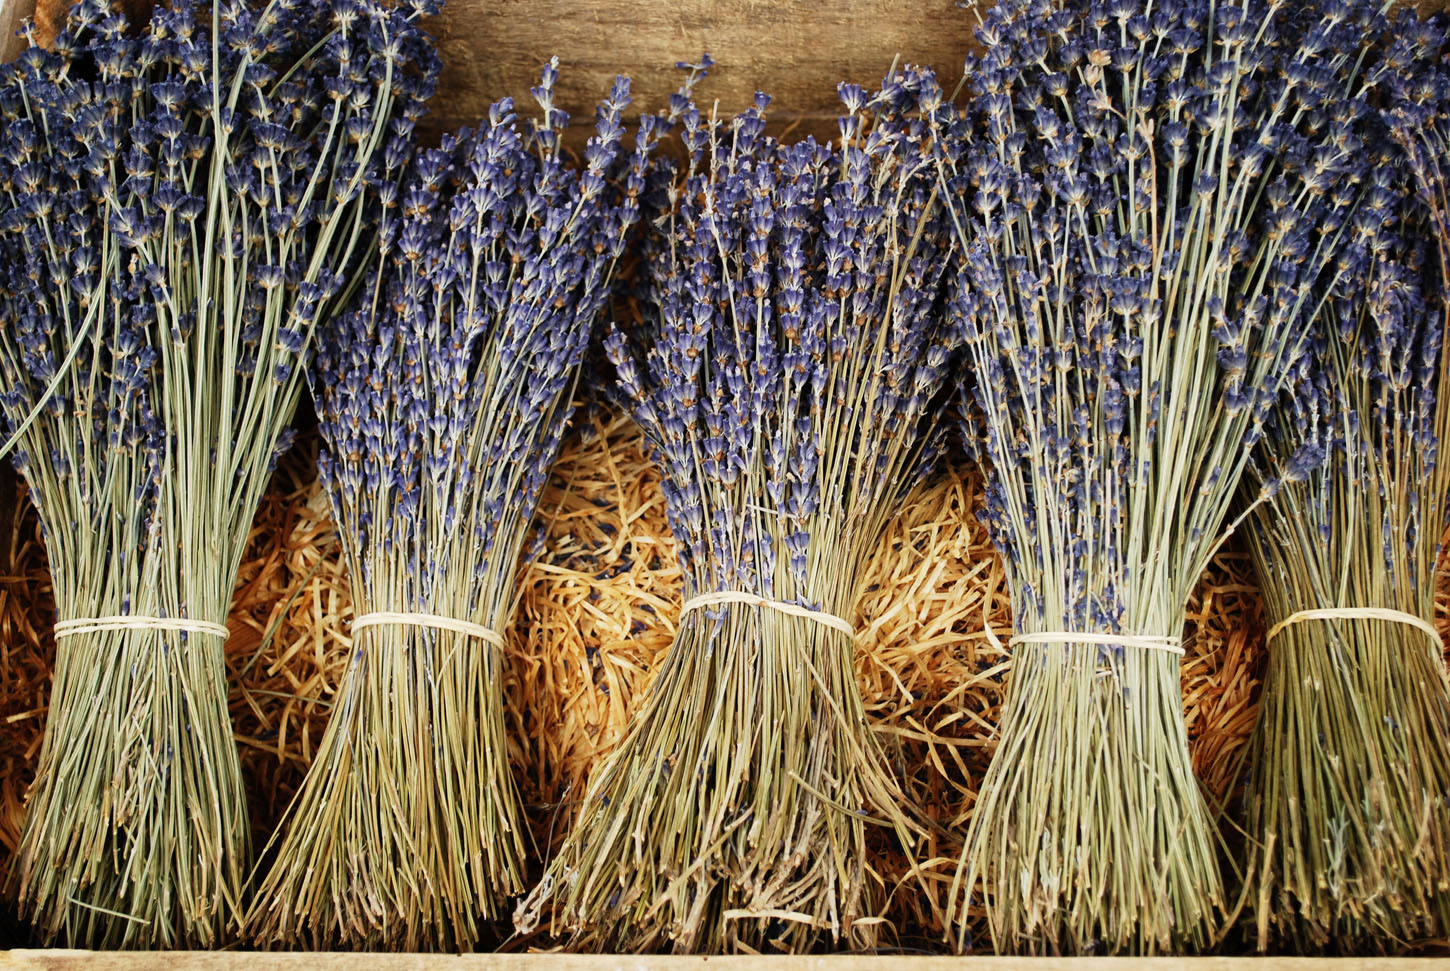 Bunches of dried lavender flowers for sale in Provence, France, Image: 152602099, License: Royalty-free, Restrictions: , Model Release: no, Credit line: Profimedia, Alamy